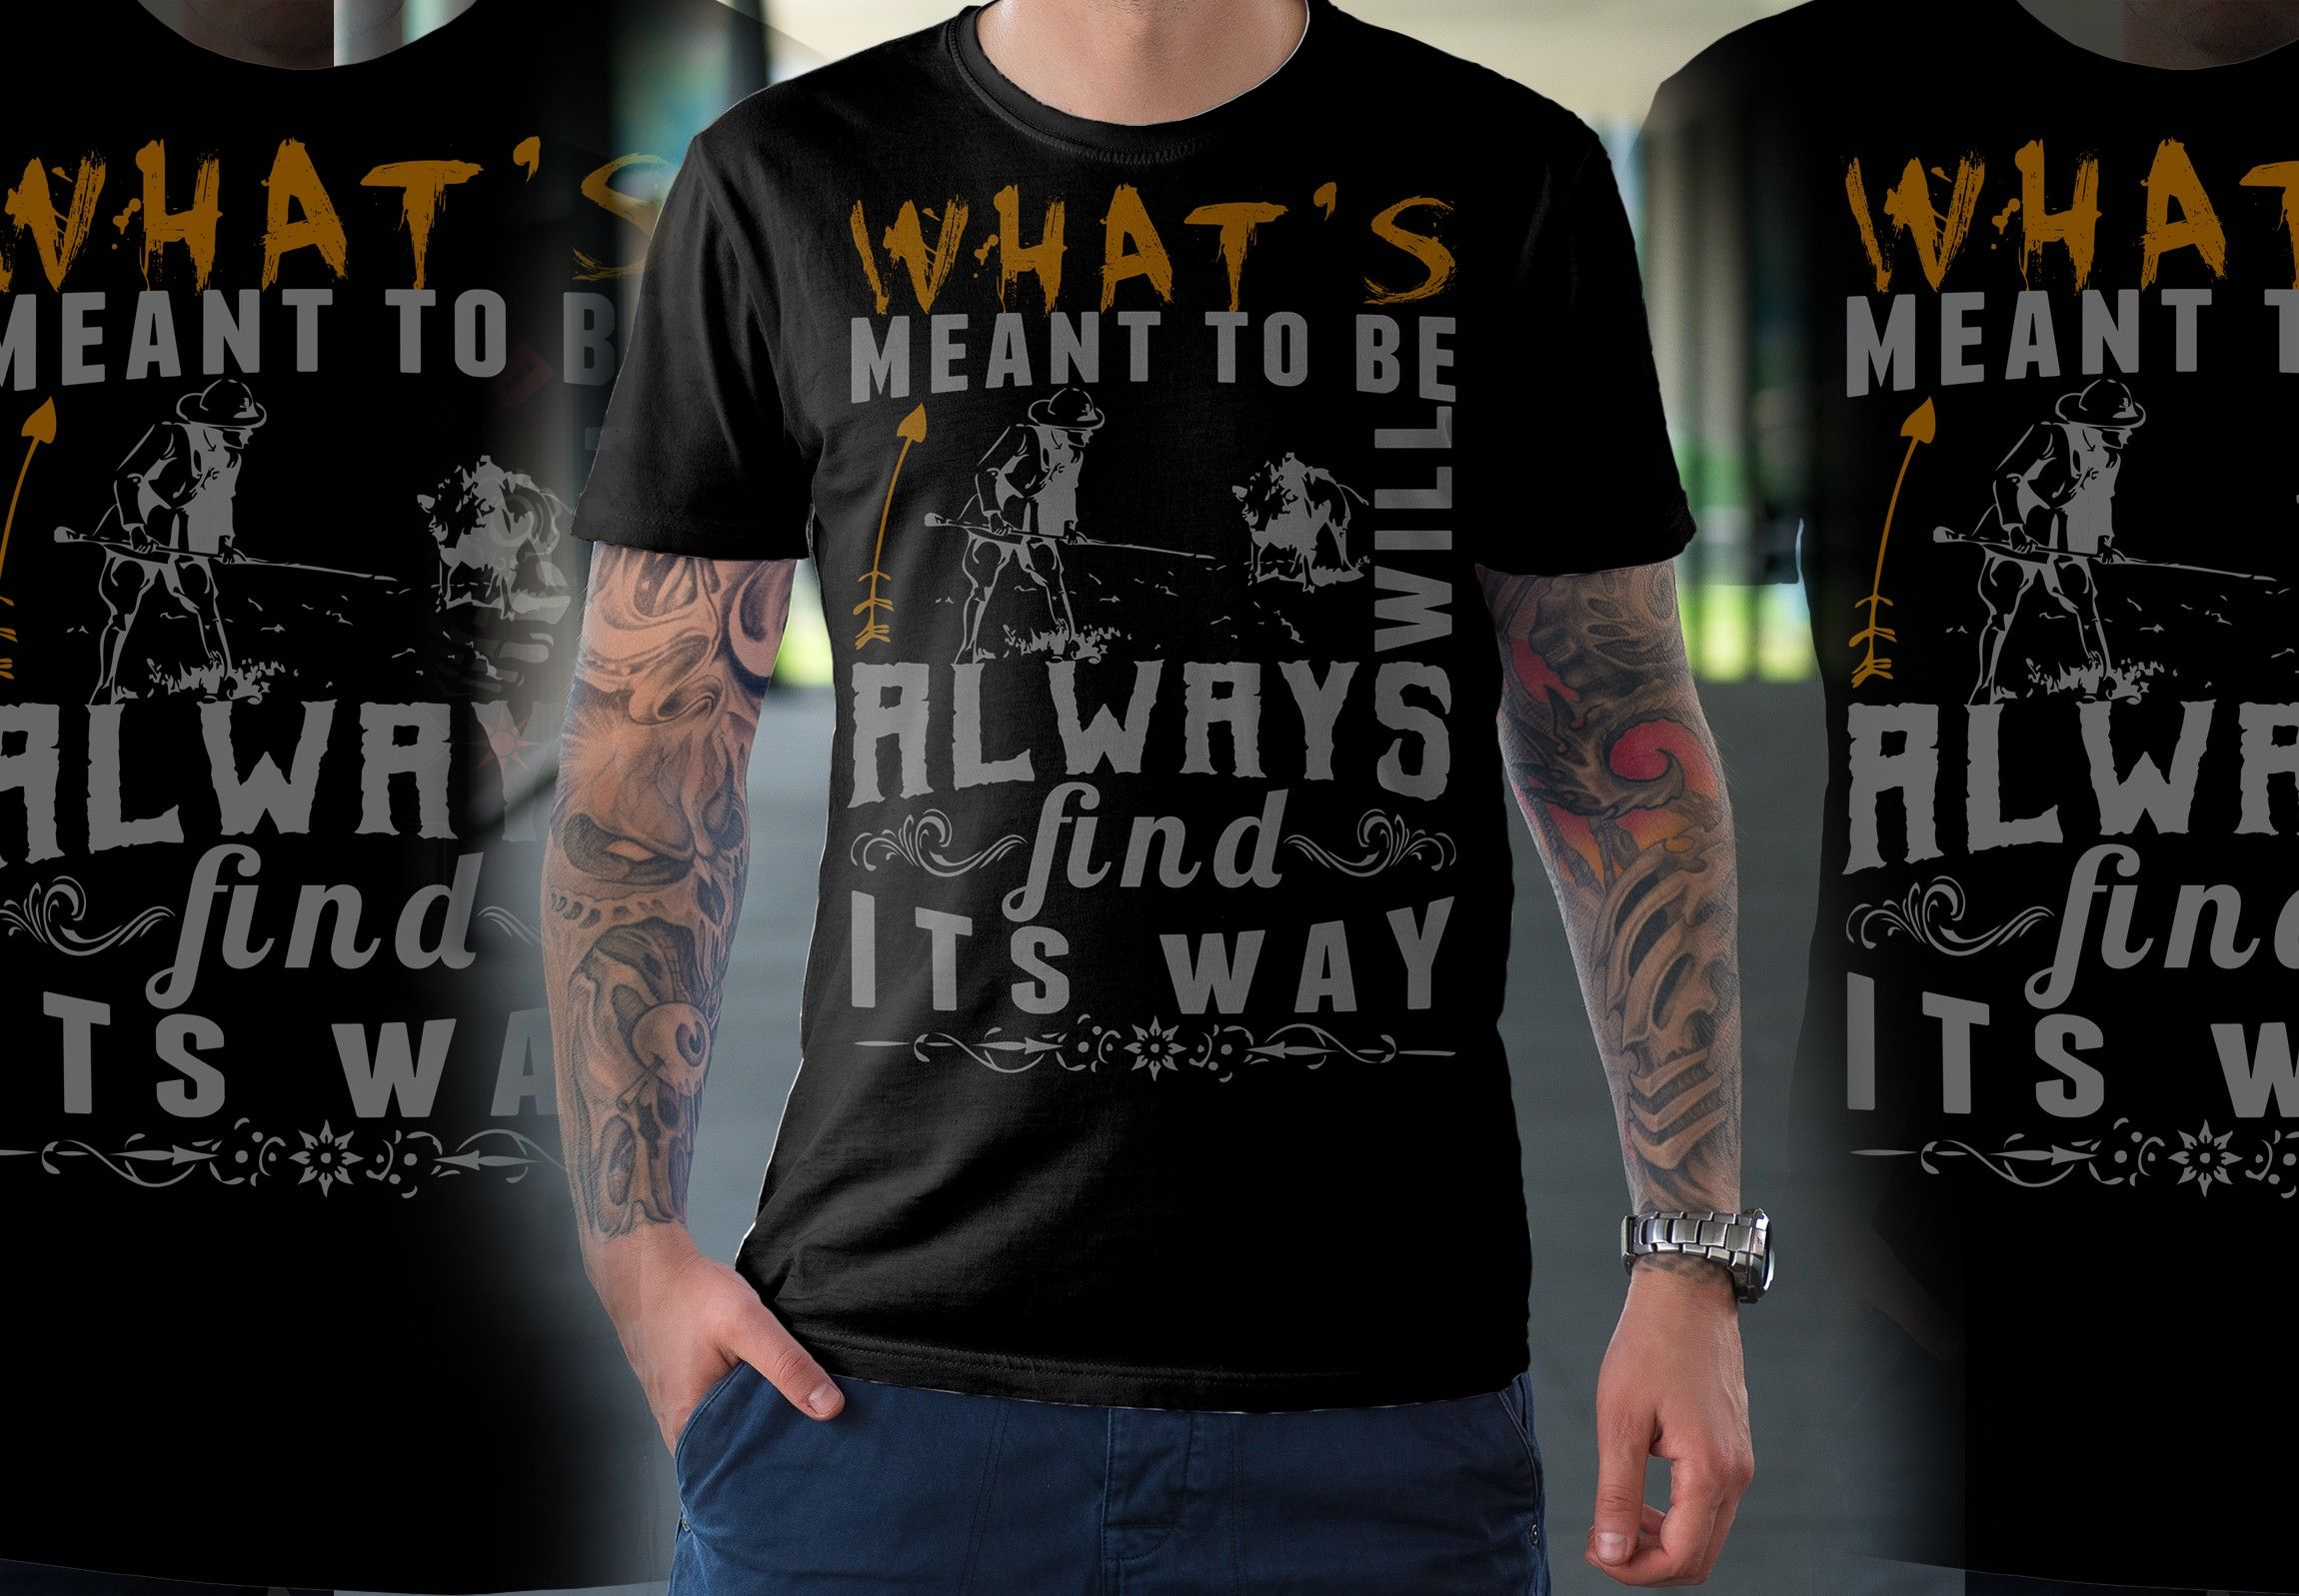 Design t shirts to sell - T Shirt Cheap Design T Shirt Free Design T Shirt To Sell Design T Shirt